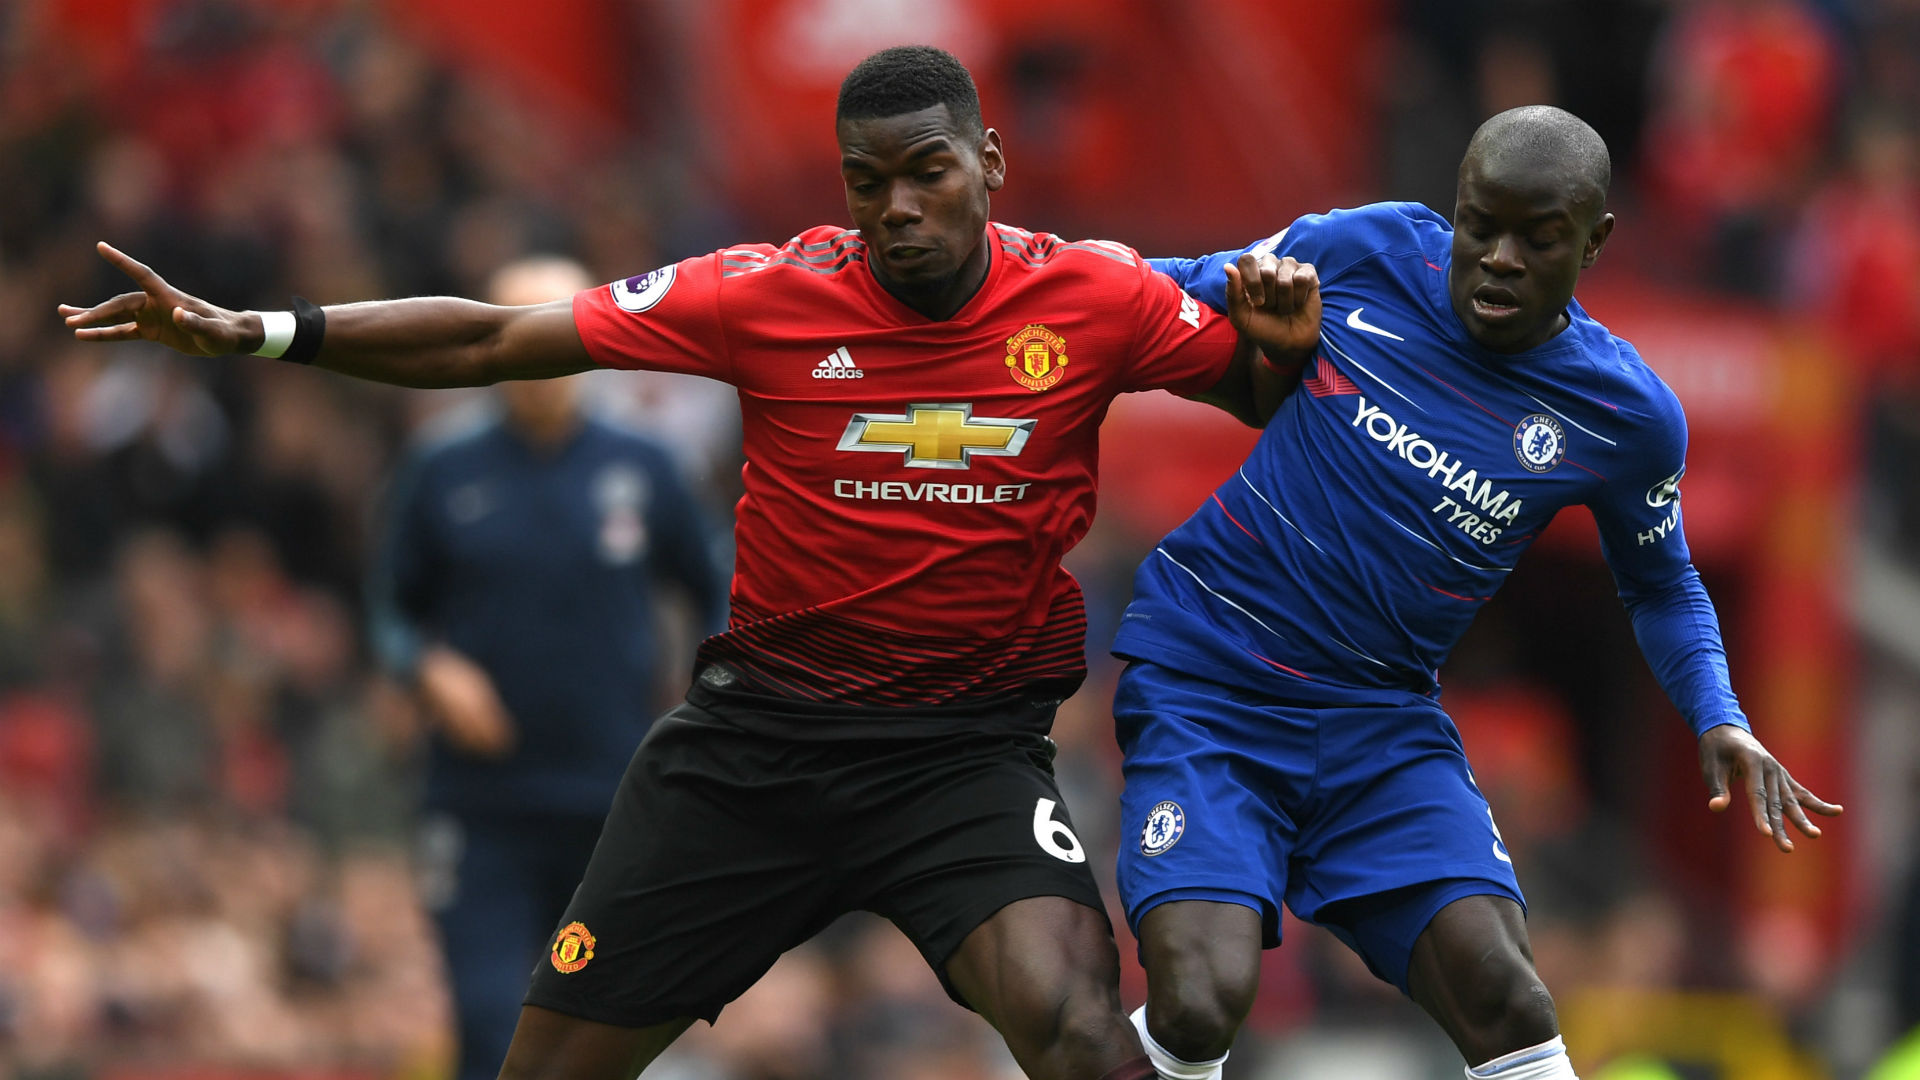 Man Utd advised to make N'Golo Kante swap bid to Chelsea with Paul Pogba as transfer bait - Bóng Đá